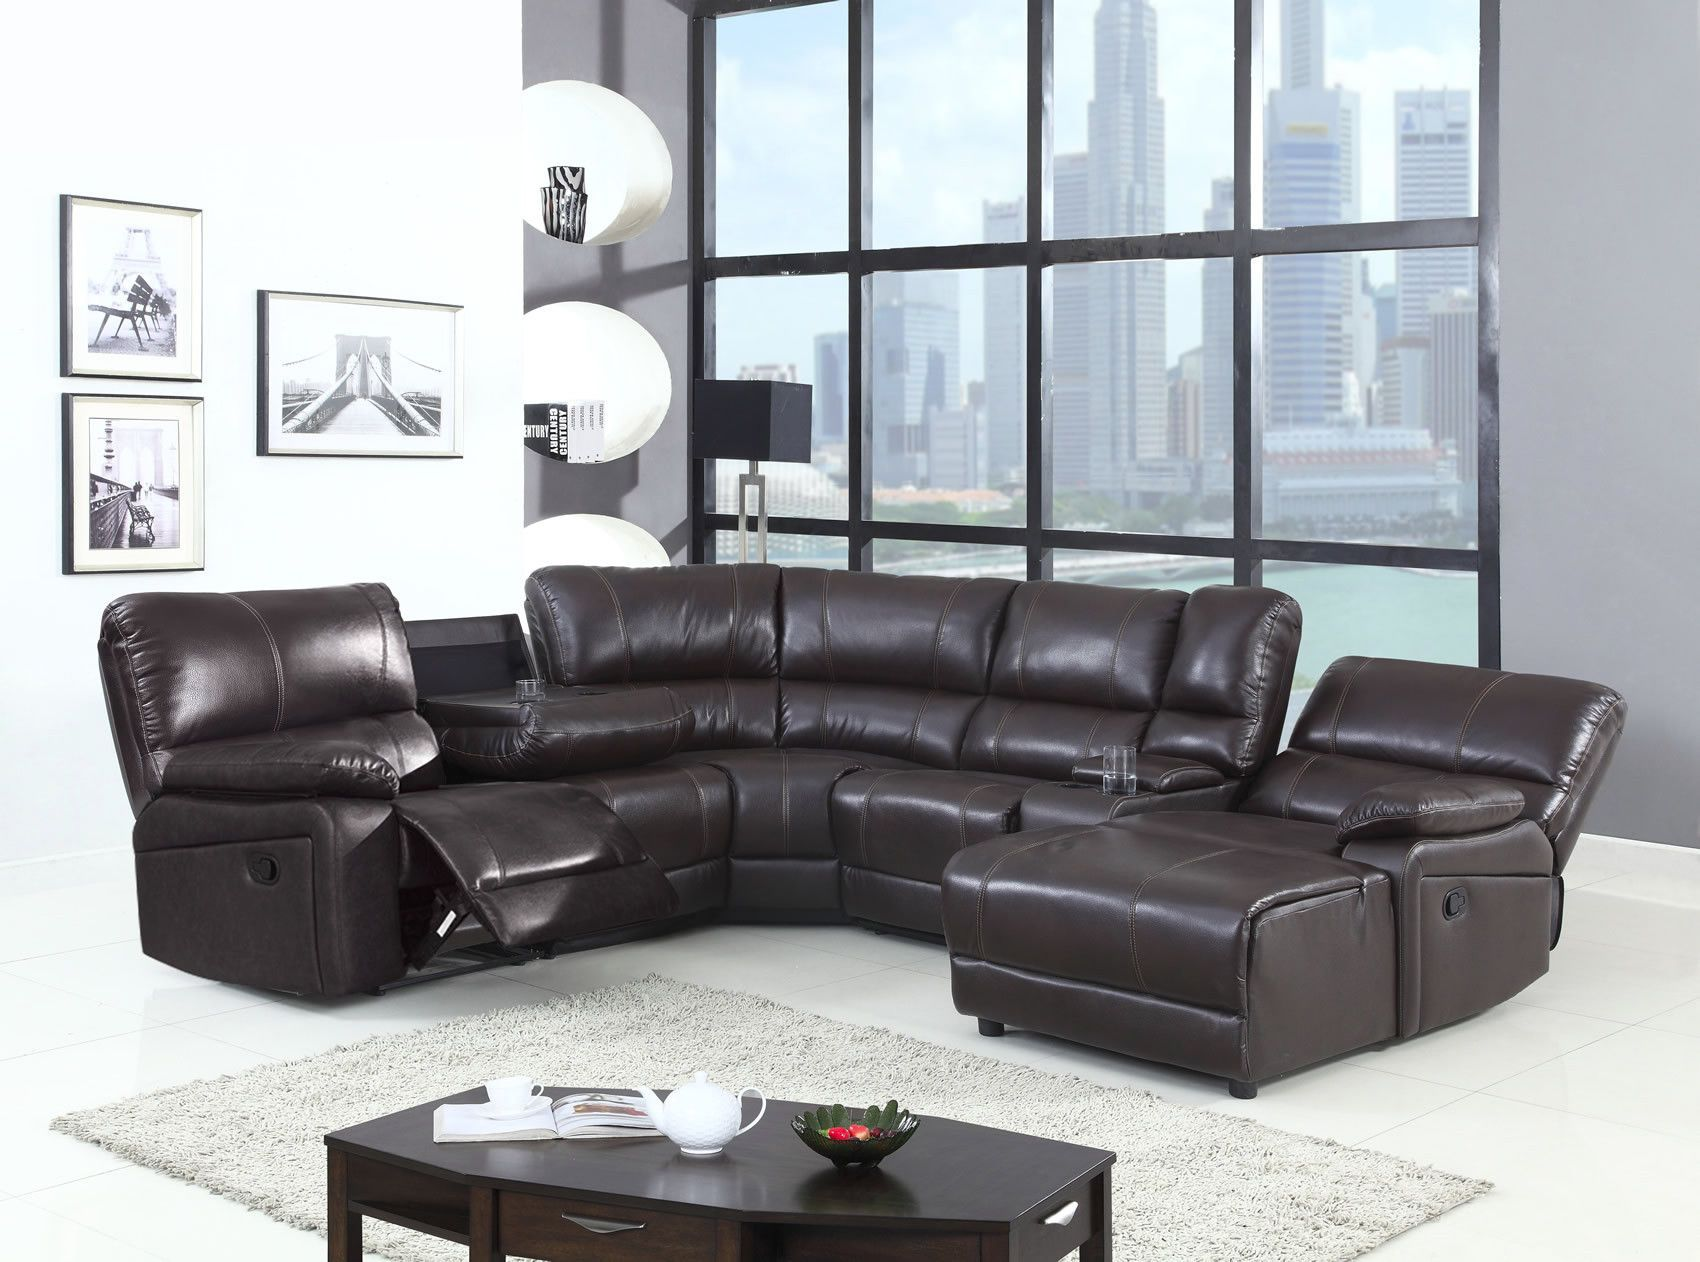 Ur 9342 Modern Brown Leather Gel Recliner Sectional Sofa